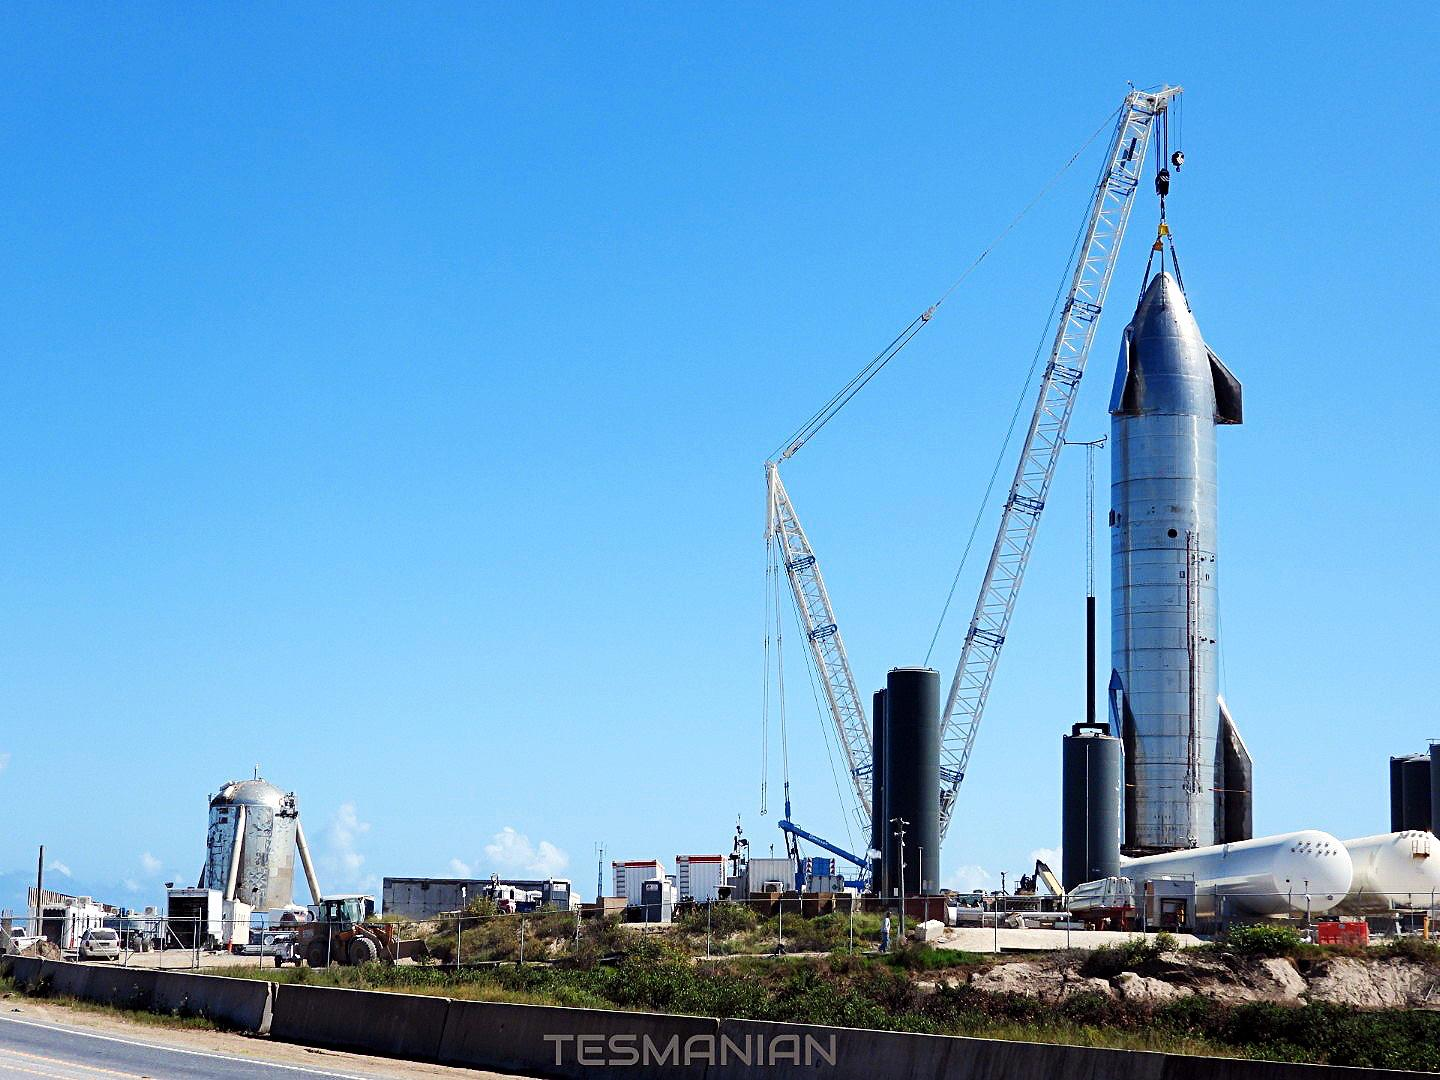 SpaceX will soon perform a second Starship SN8 Raptor engine test